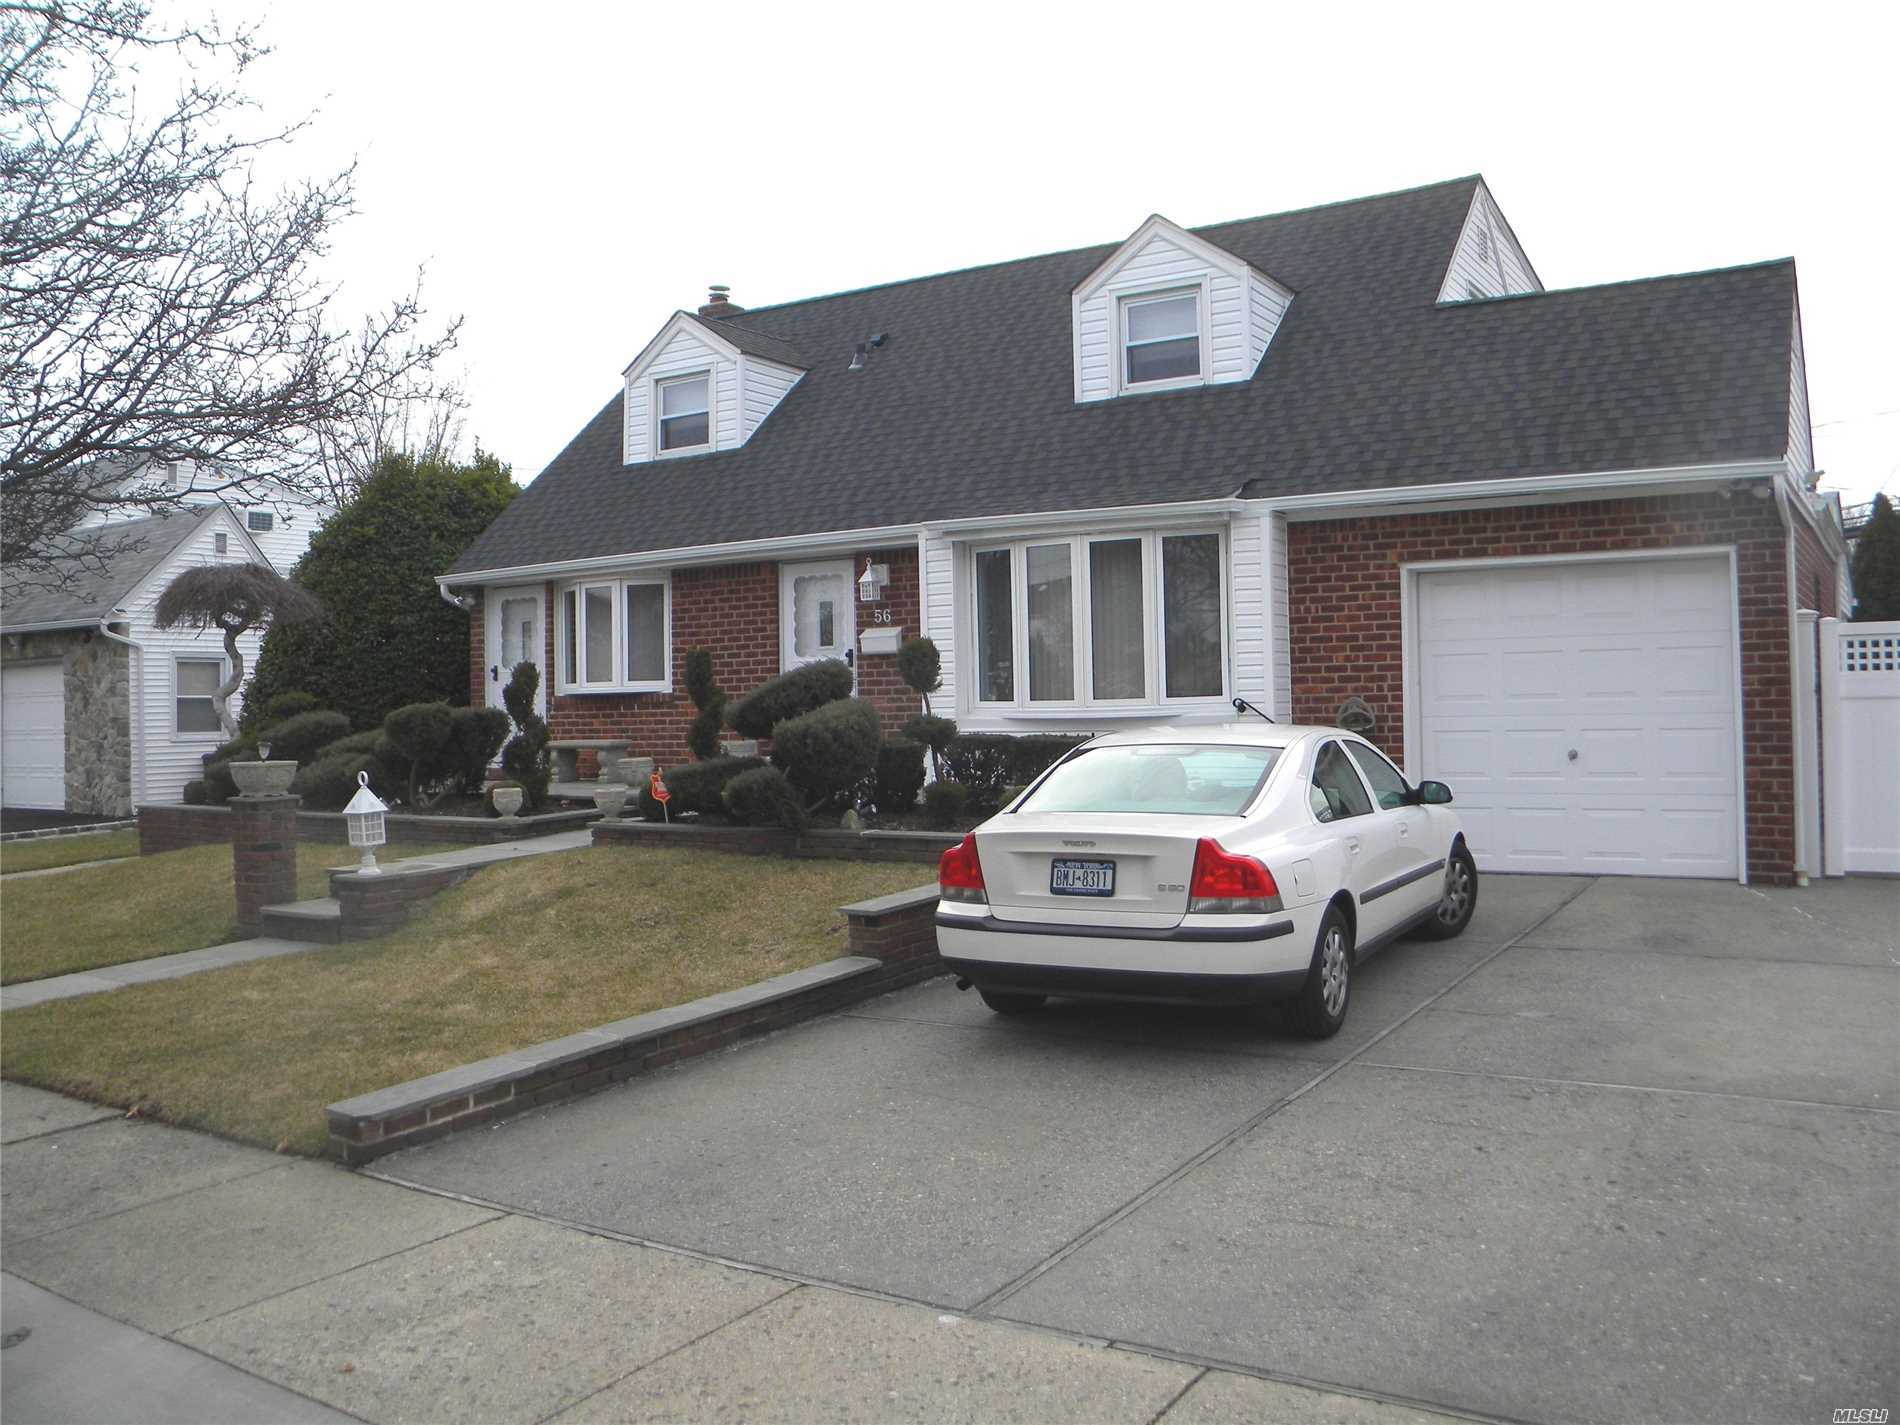 Birchwood Home/Island School Dist.Patio +Awning/Fully Fenced Yard/ Beautifully Landscaped/( 2 Bay Windows-Lr+Dr).Blue Stone Front Patio. 2 Car Driveway/New 220 Amp Service.+New Roof+New Windows!! S.S Appliances, Freezer In Basement .Garage Has Attic., Fully Alarmed, Sprinkler Lawn System , Det. Dutch Shed In Yard, Front And Rear L.E.D Spotlights. Elec. Garage Opener. Furnace Has Humidifier+ U.V. Walk To All Shops, Close To All Highways And Schools. Filtration System On Water Line.